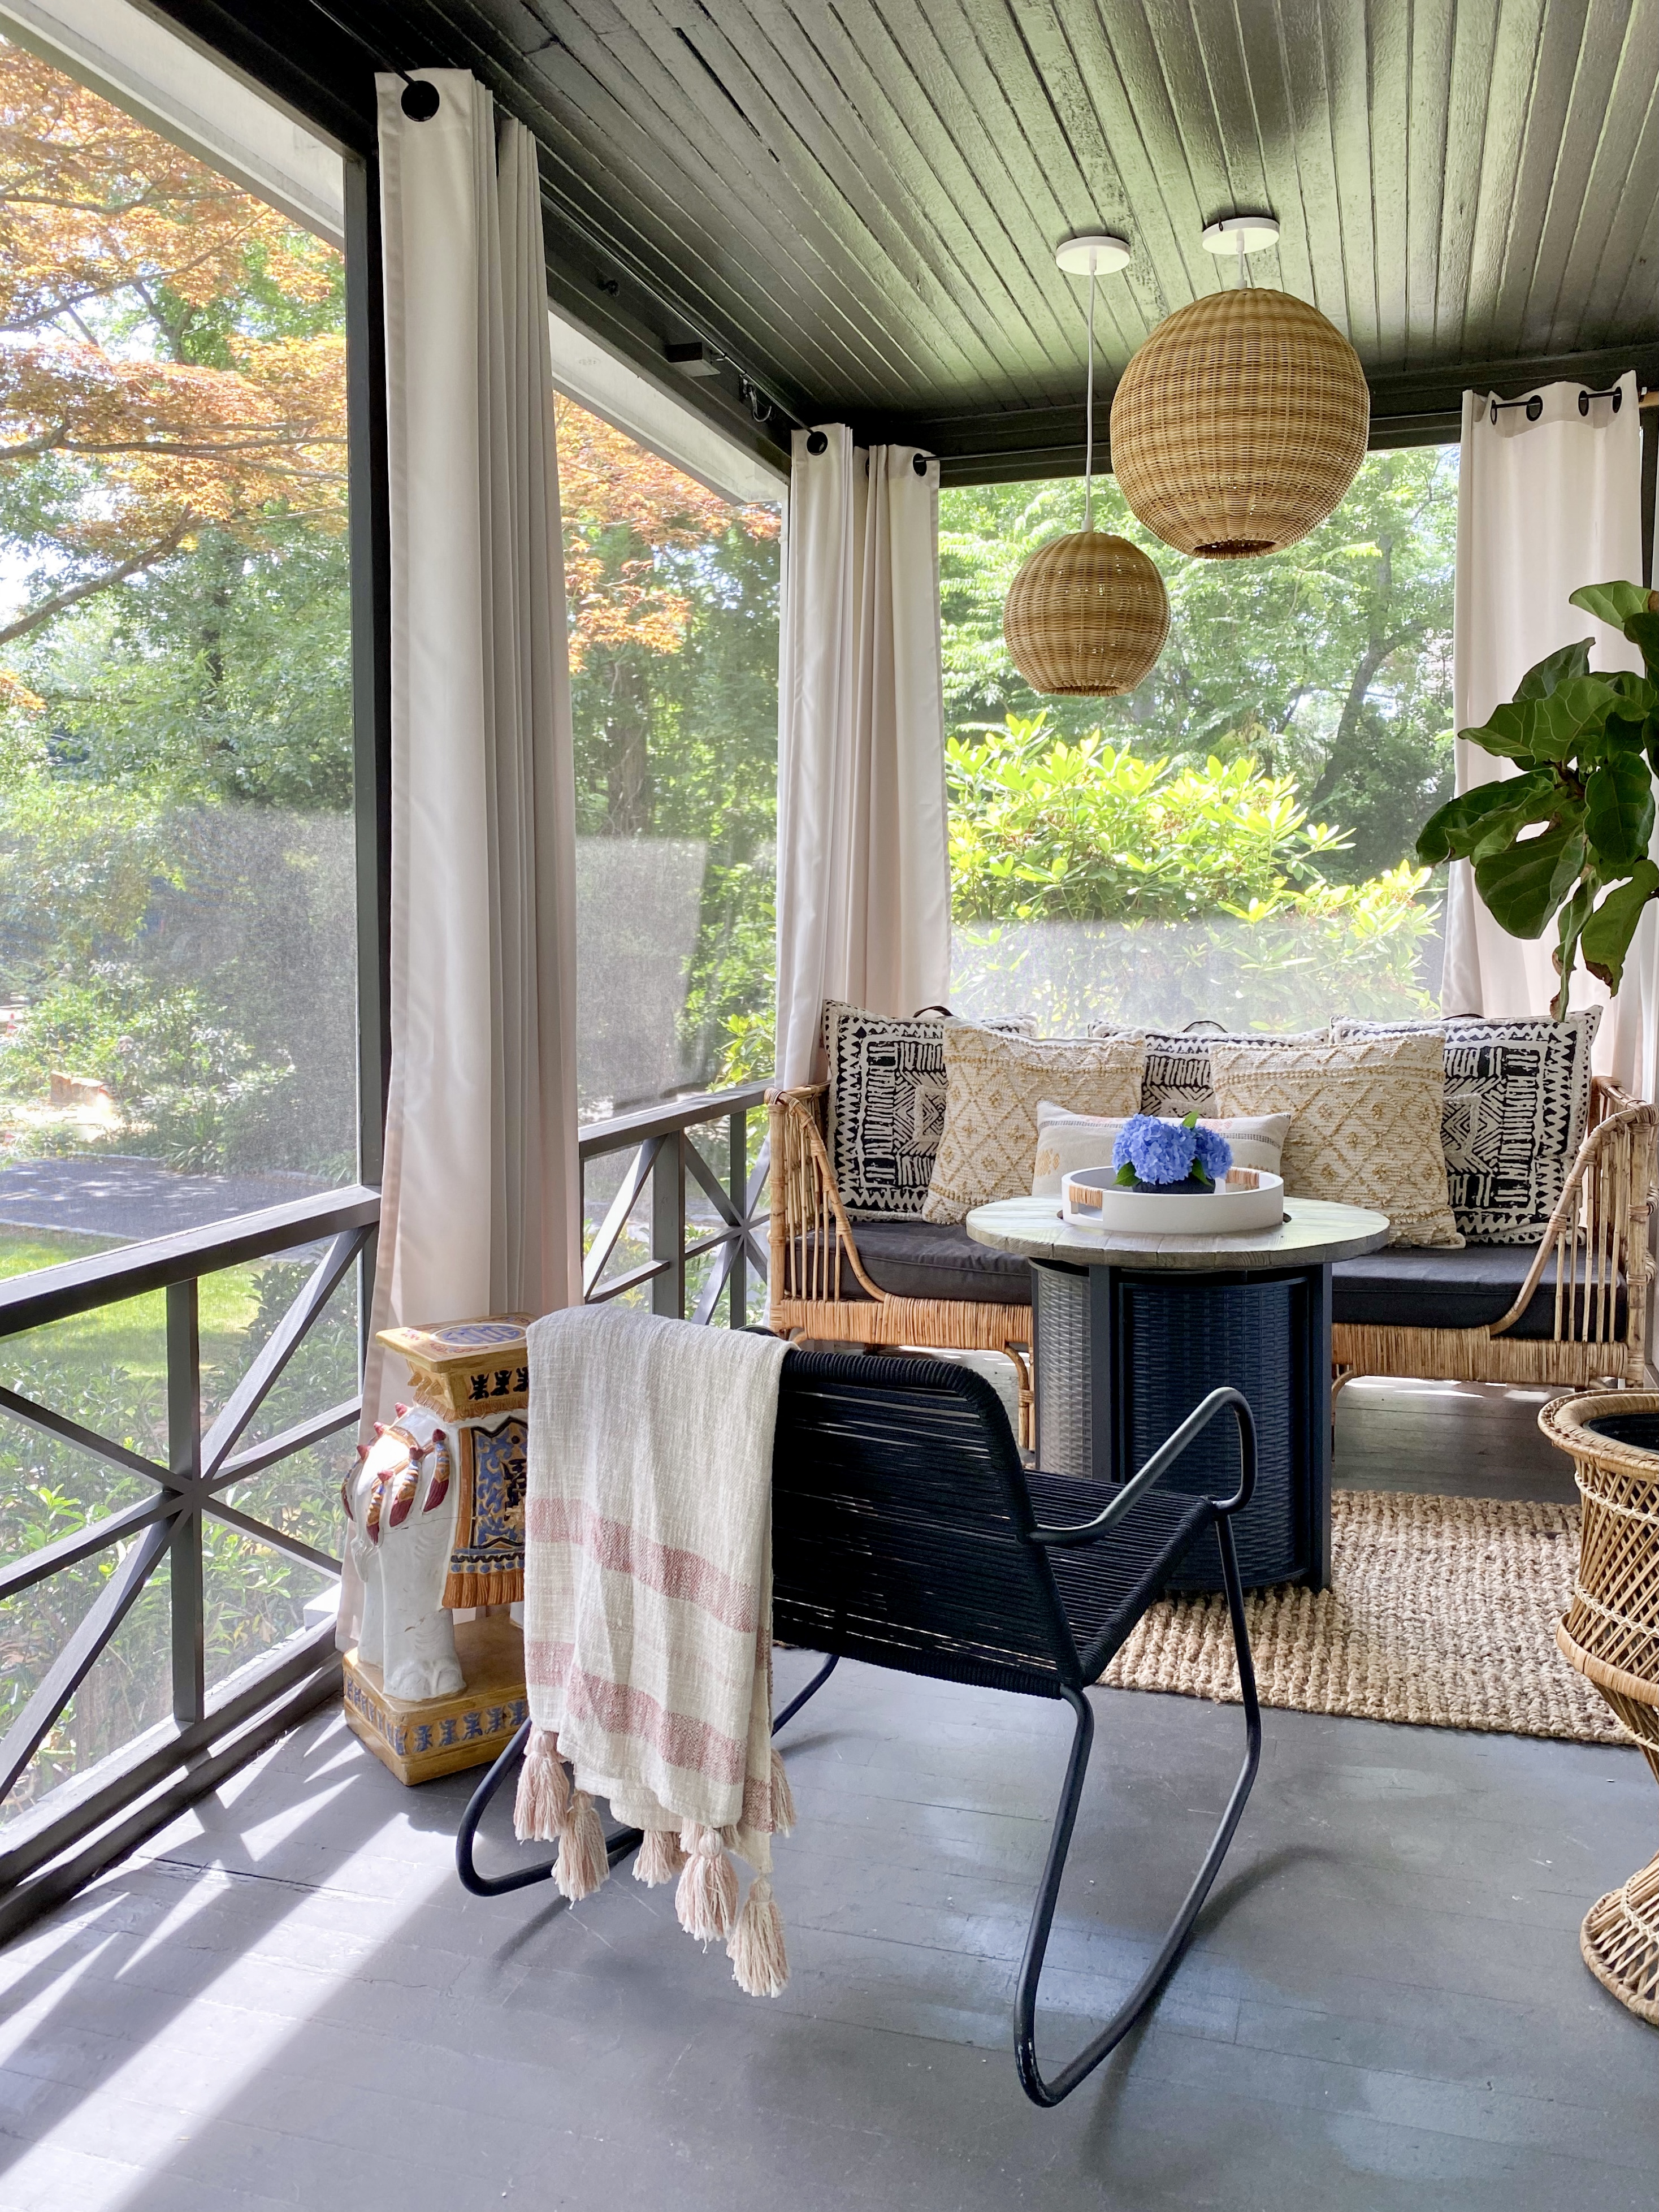 Our Summer Porch Refresh with Serena & Lily